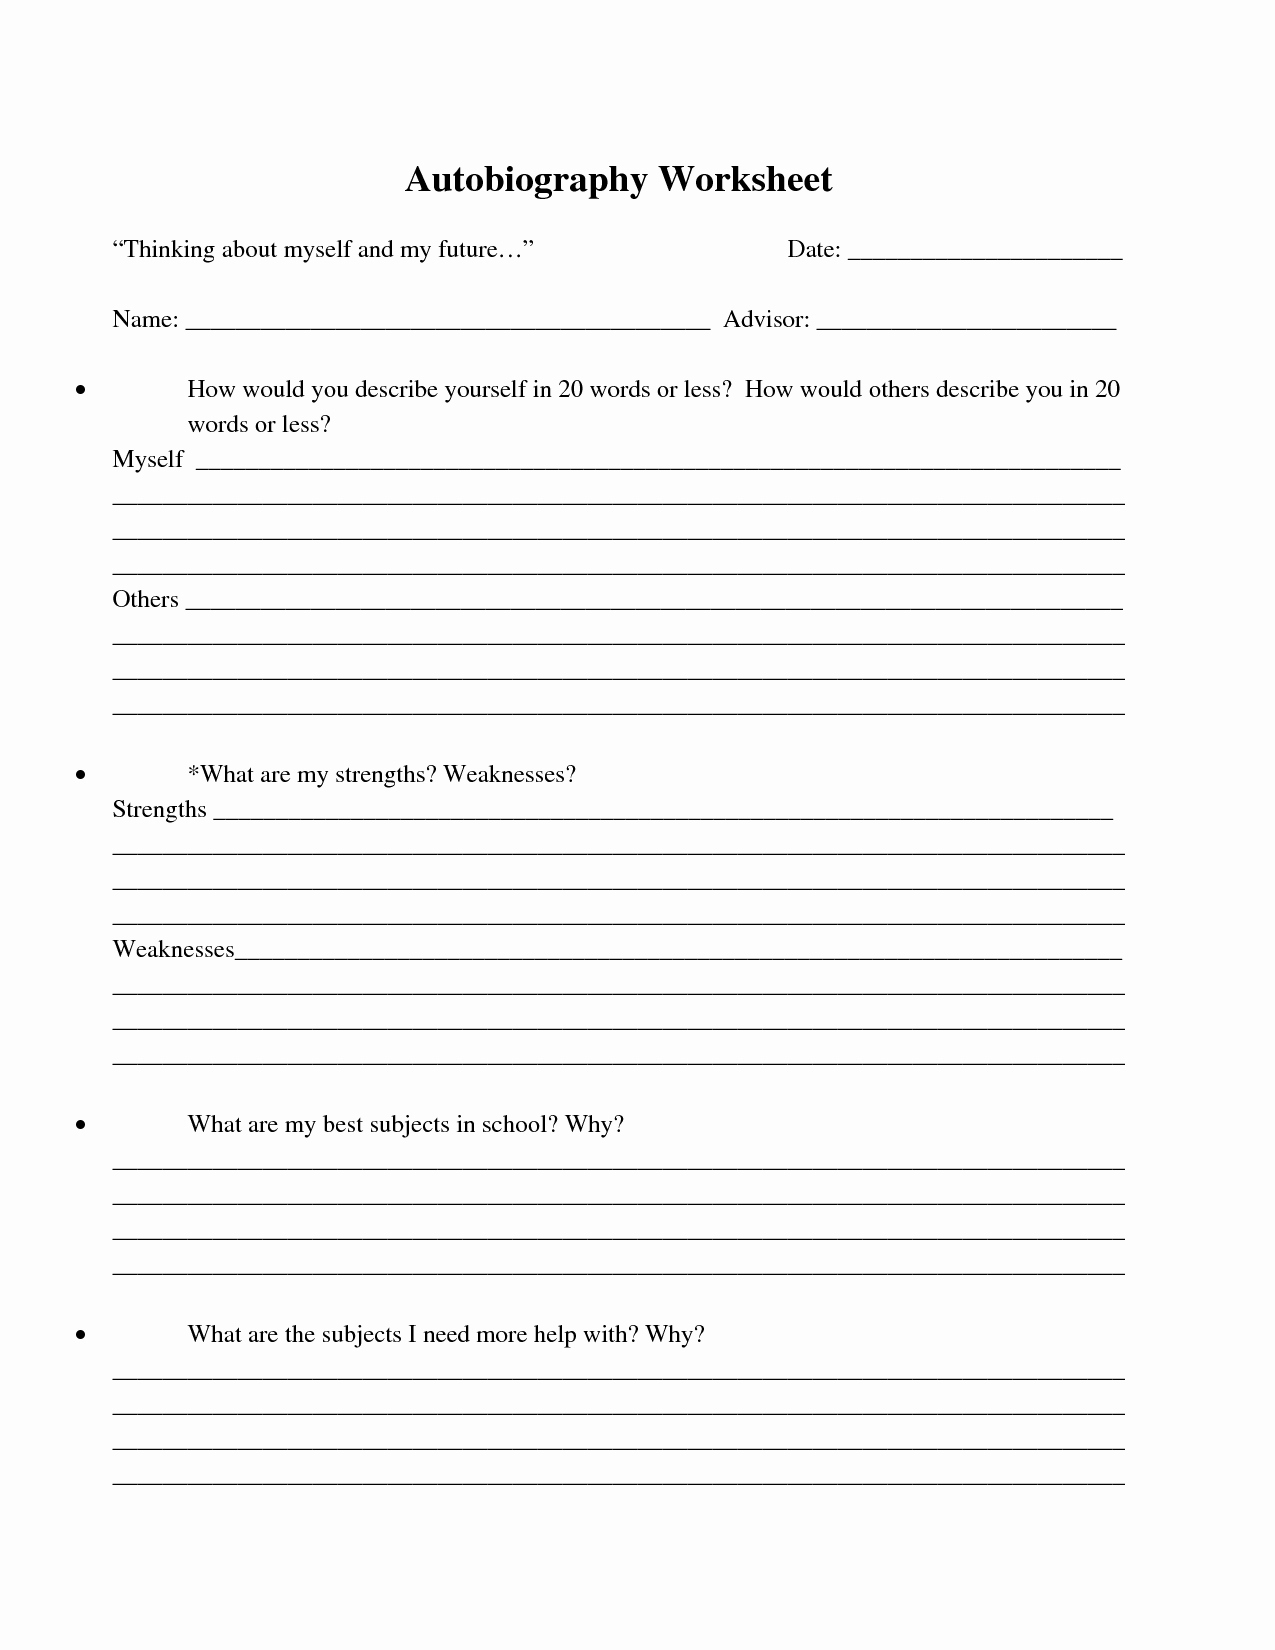 Worksheet : Bio Poem Examples For Kids New Best S Of Printable | Printable Biography Worksheets